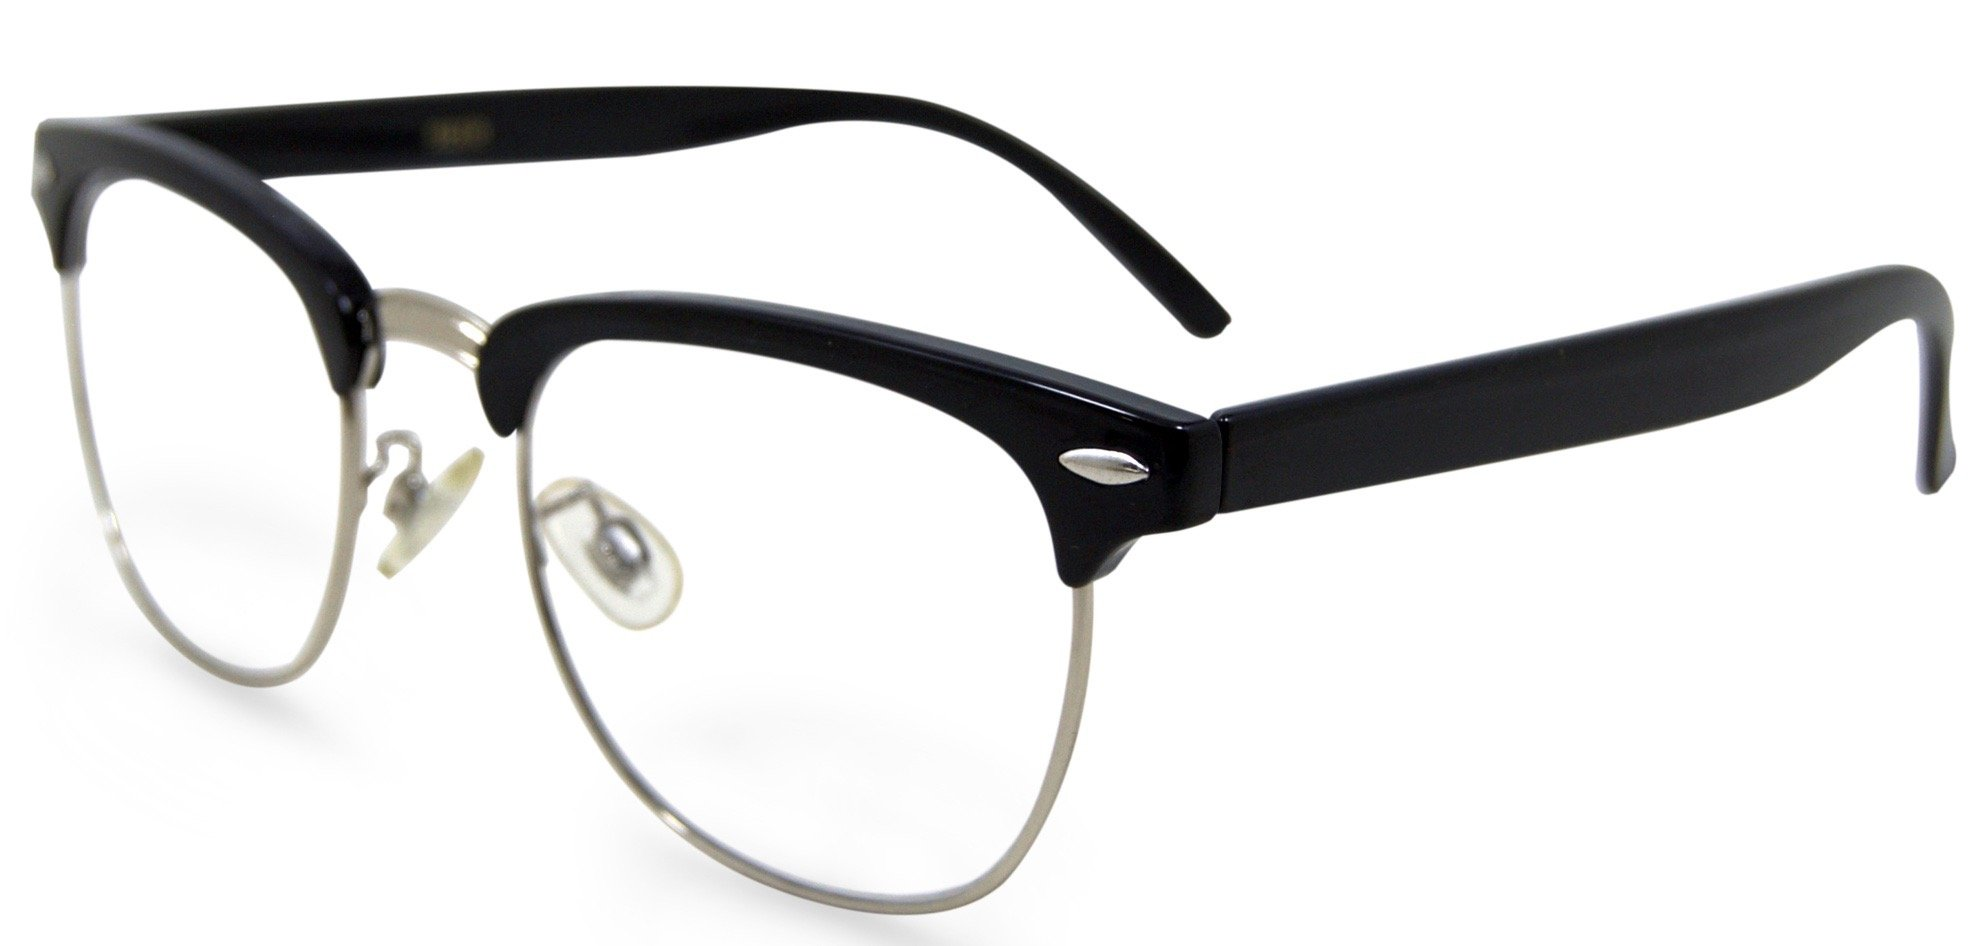 In Style Eyes Sellecks Designer Reading Glasses for Both Men & Women/Black/1.25